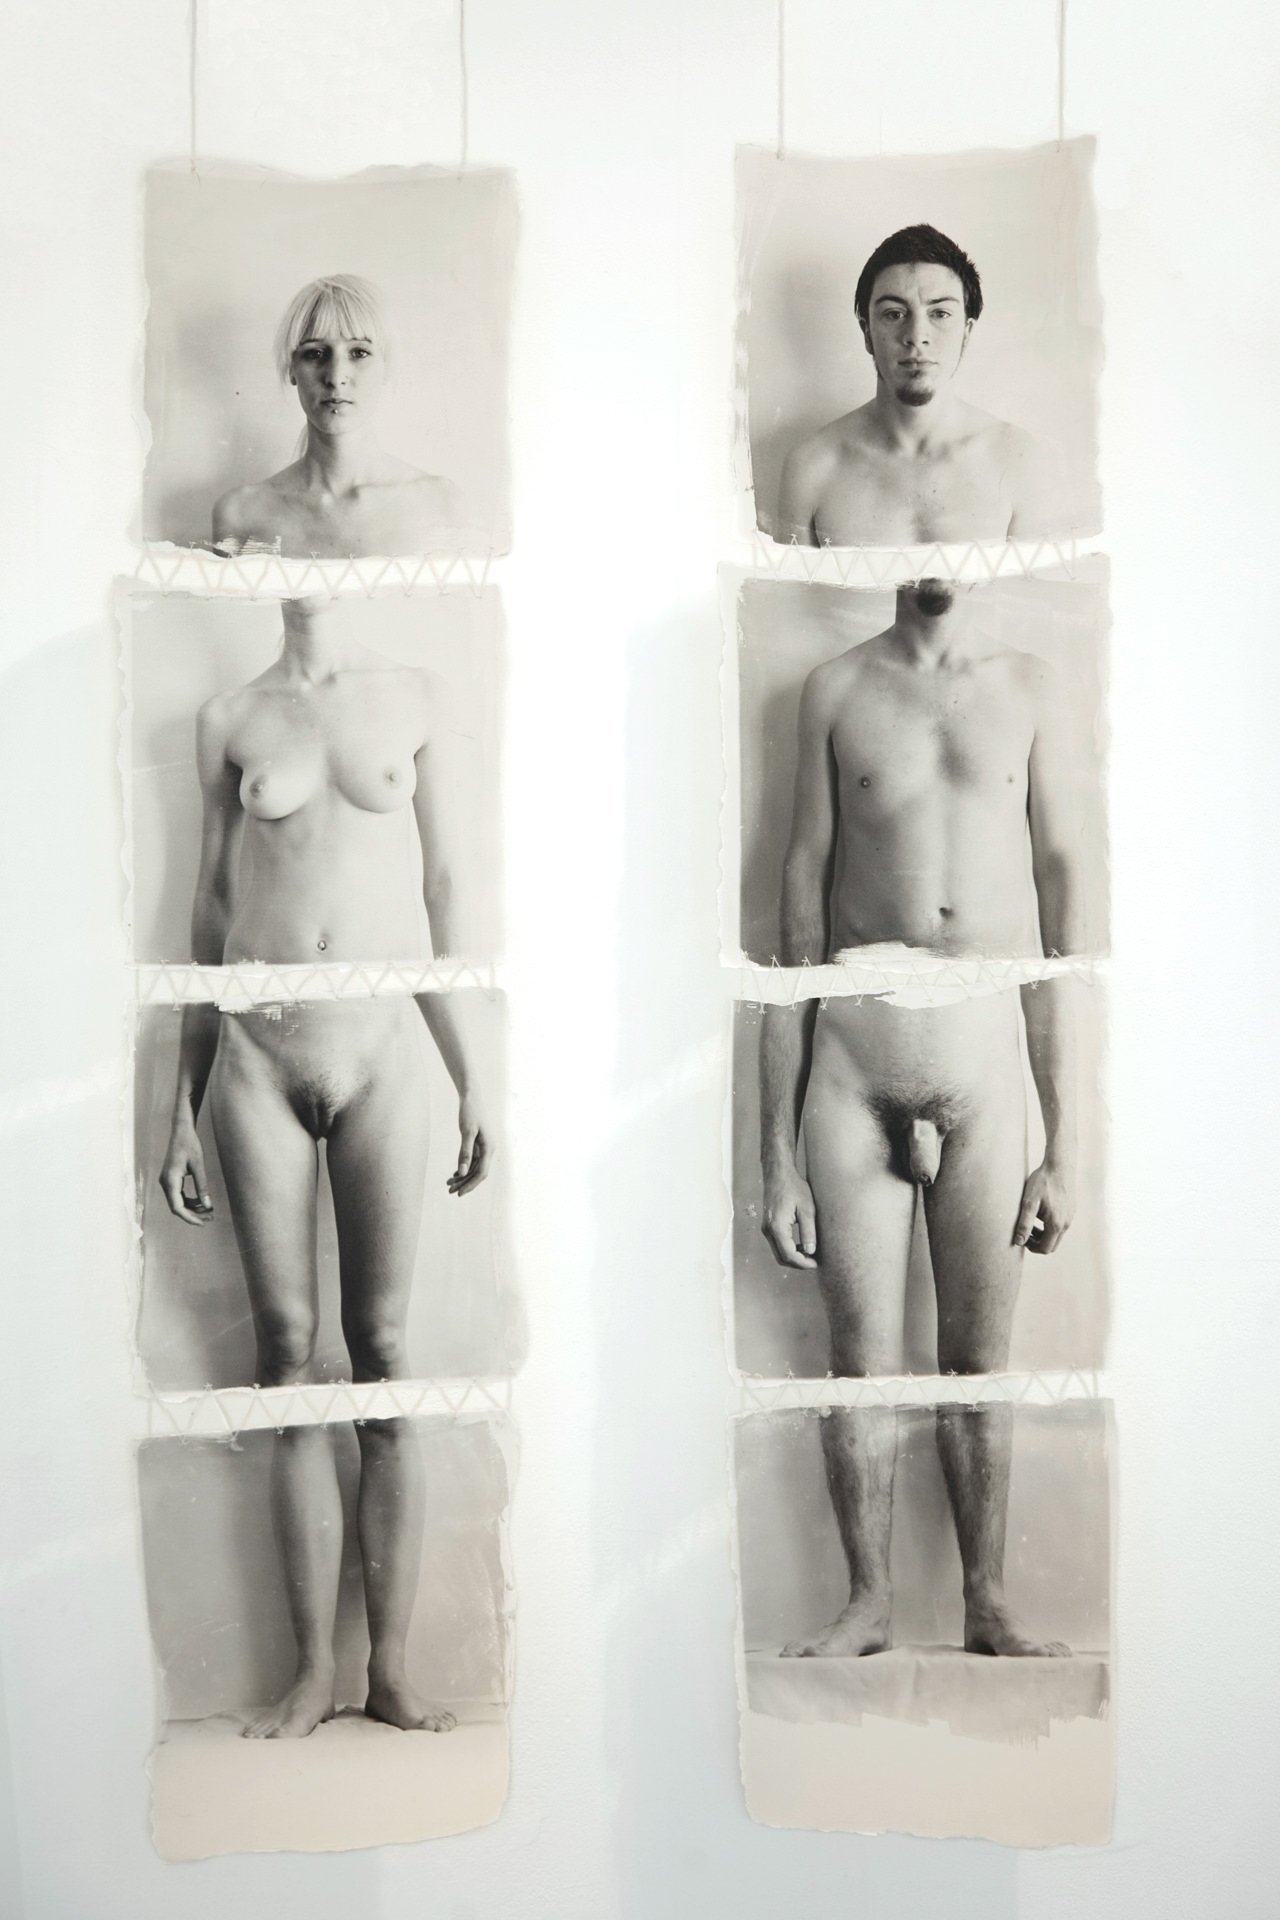 Separate B&W nude portraits of a man and a woman, broken up into four sections each, printed with liquid emulsion onto watercolour paper